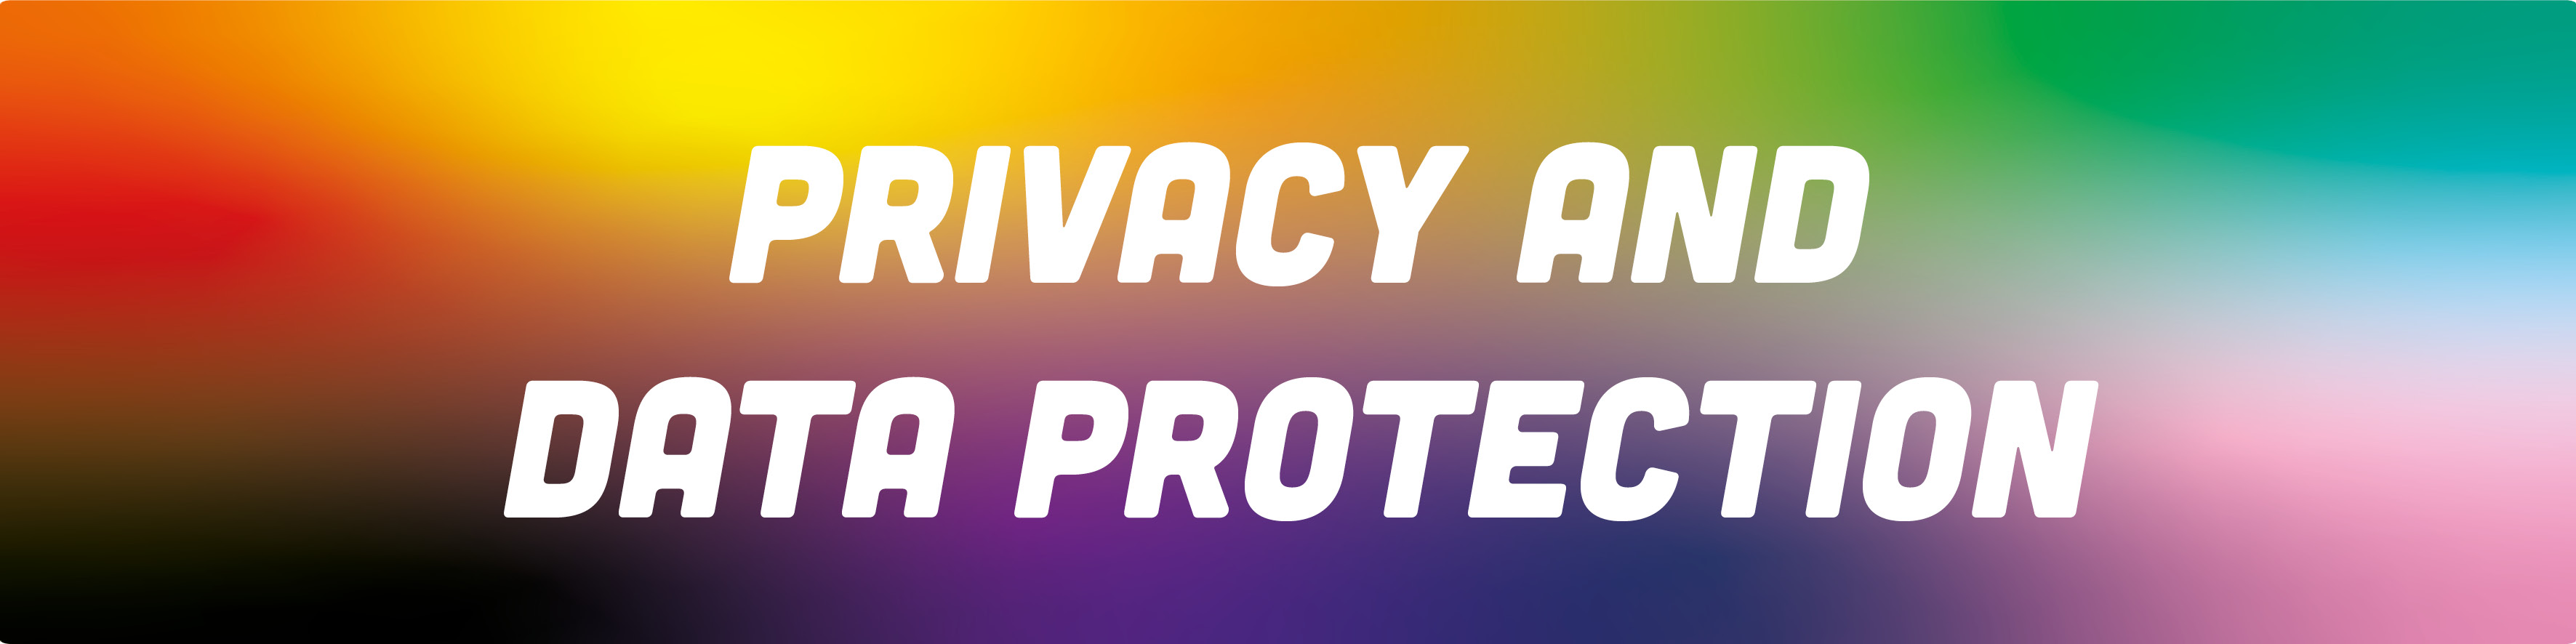 Image is a rainbow gradient with the text Privacy and Data Protection